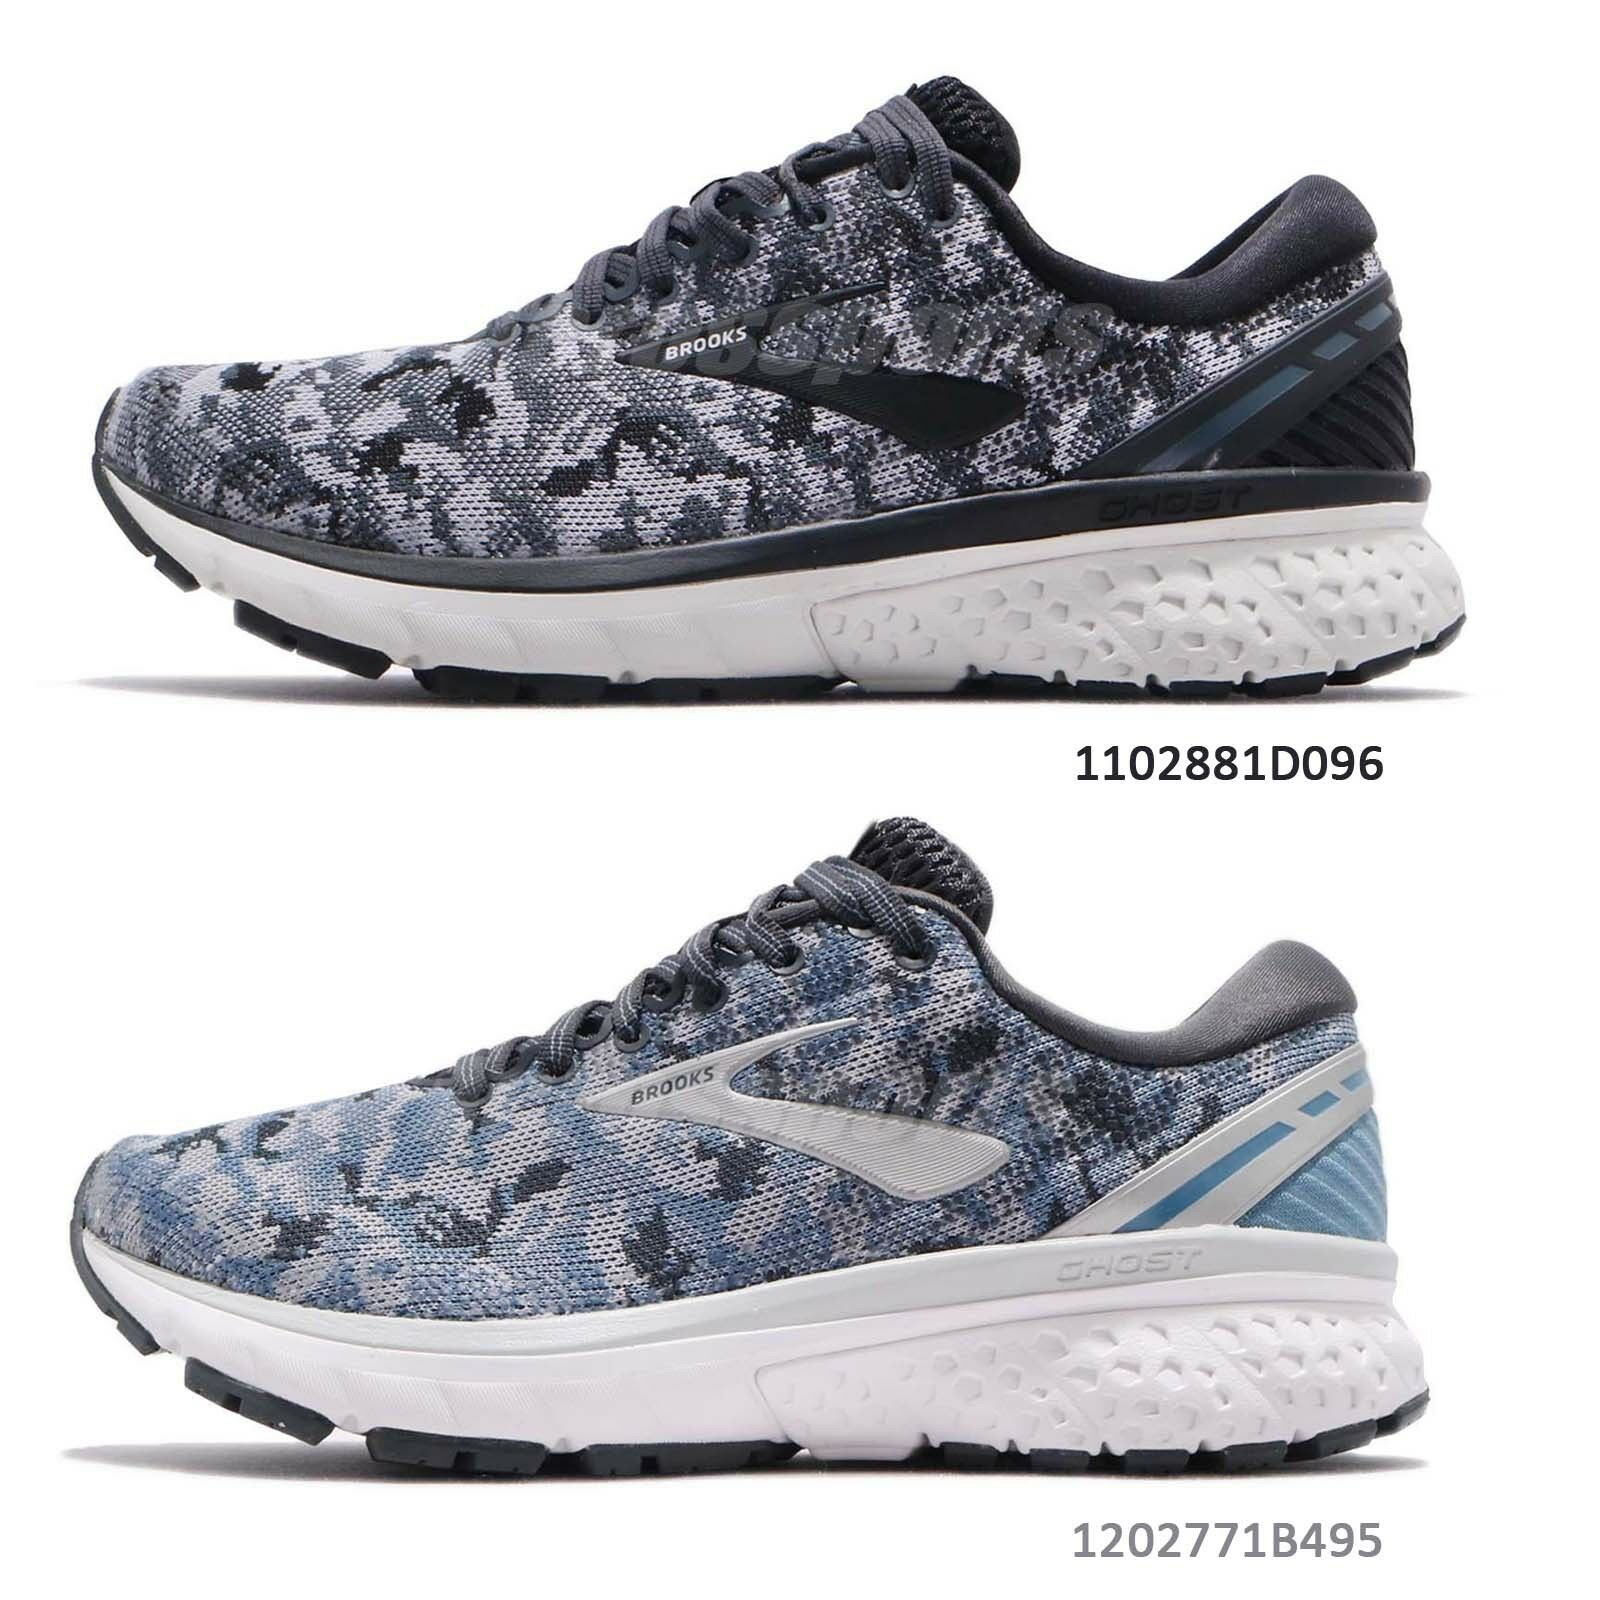 Brooks Ghost 11 gris Oyster Camo Hommes femmes FonctionneHommest chaussures Special Edition Pick 1